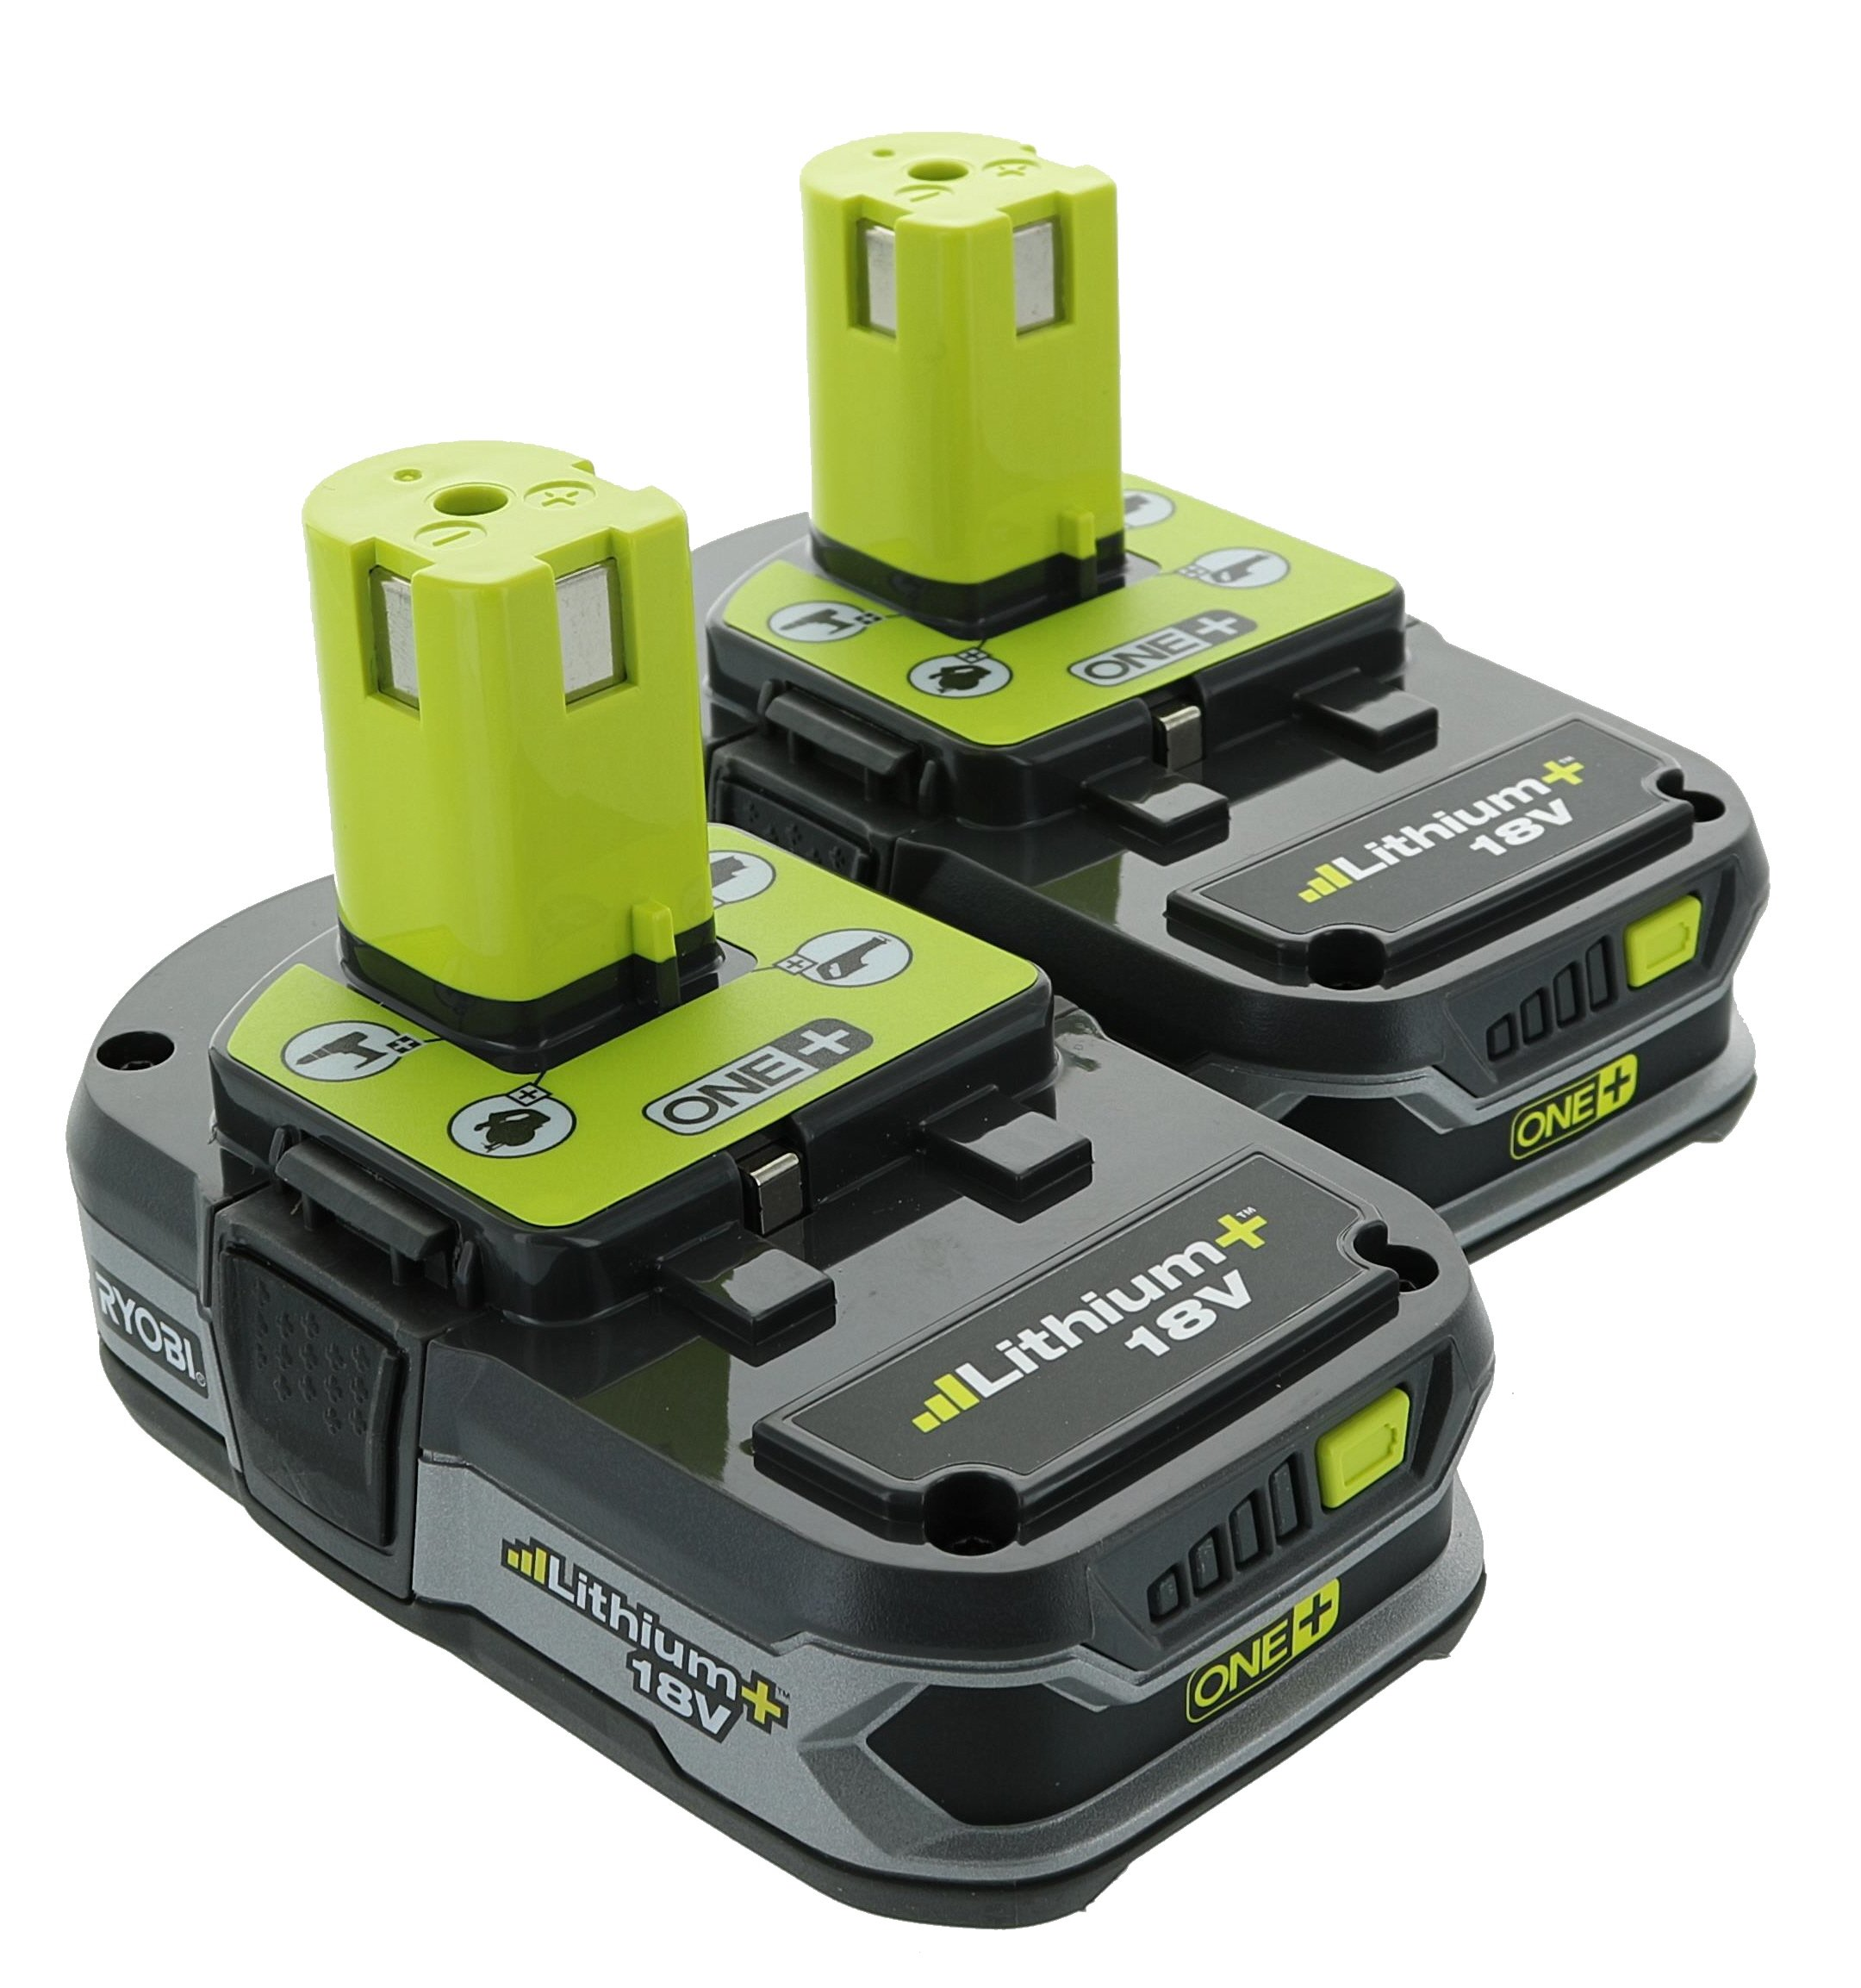 ryobi p109 18 volt lithium ion compact batteries two pack of p107 ebay. Black Bedroom Furniture Sets. Home Design Ideas